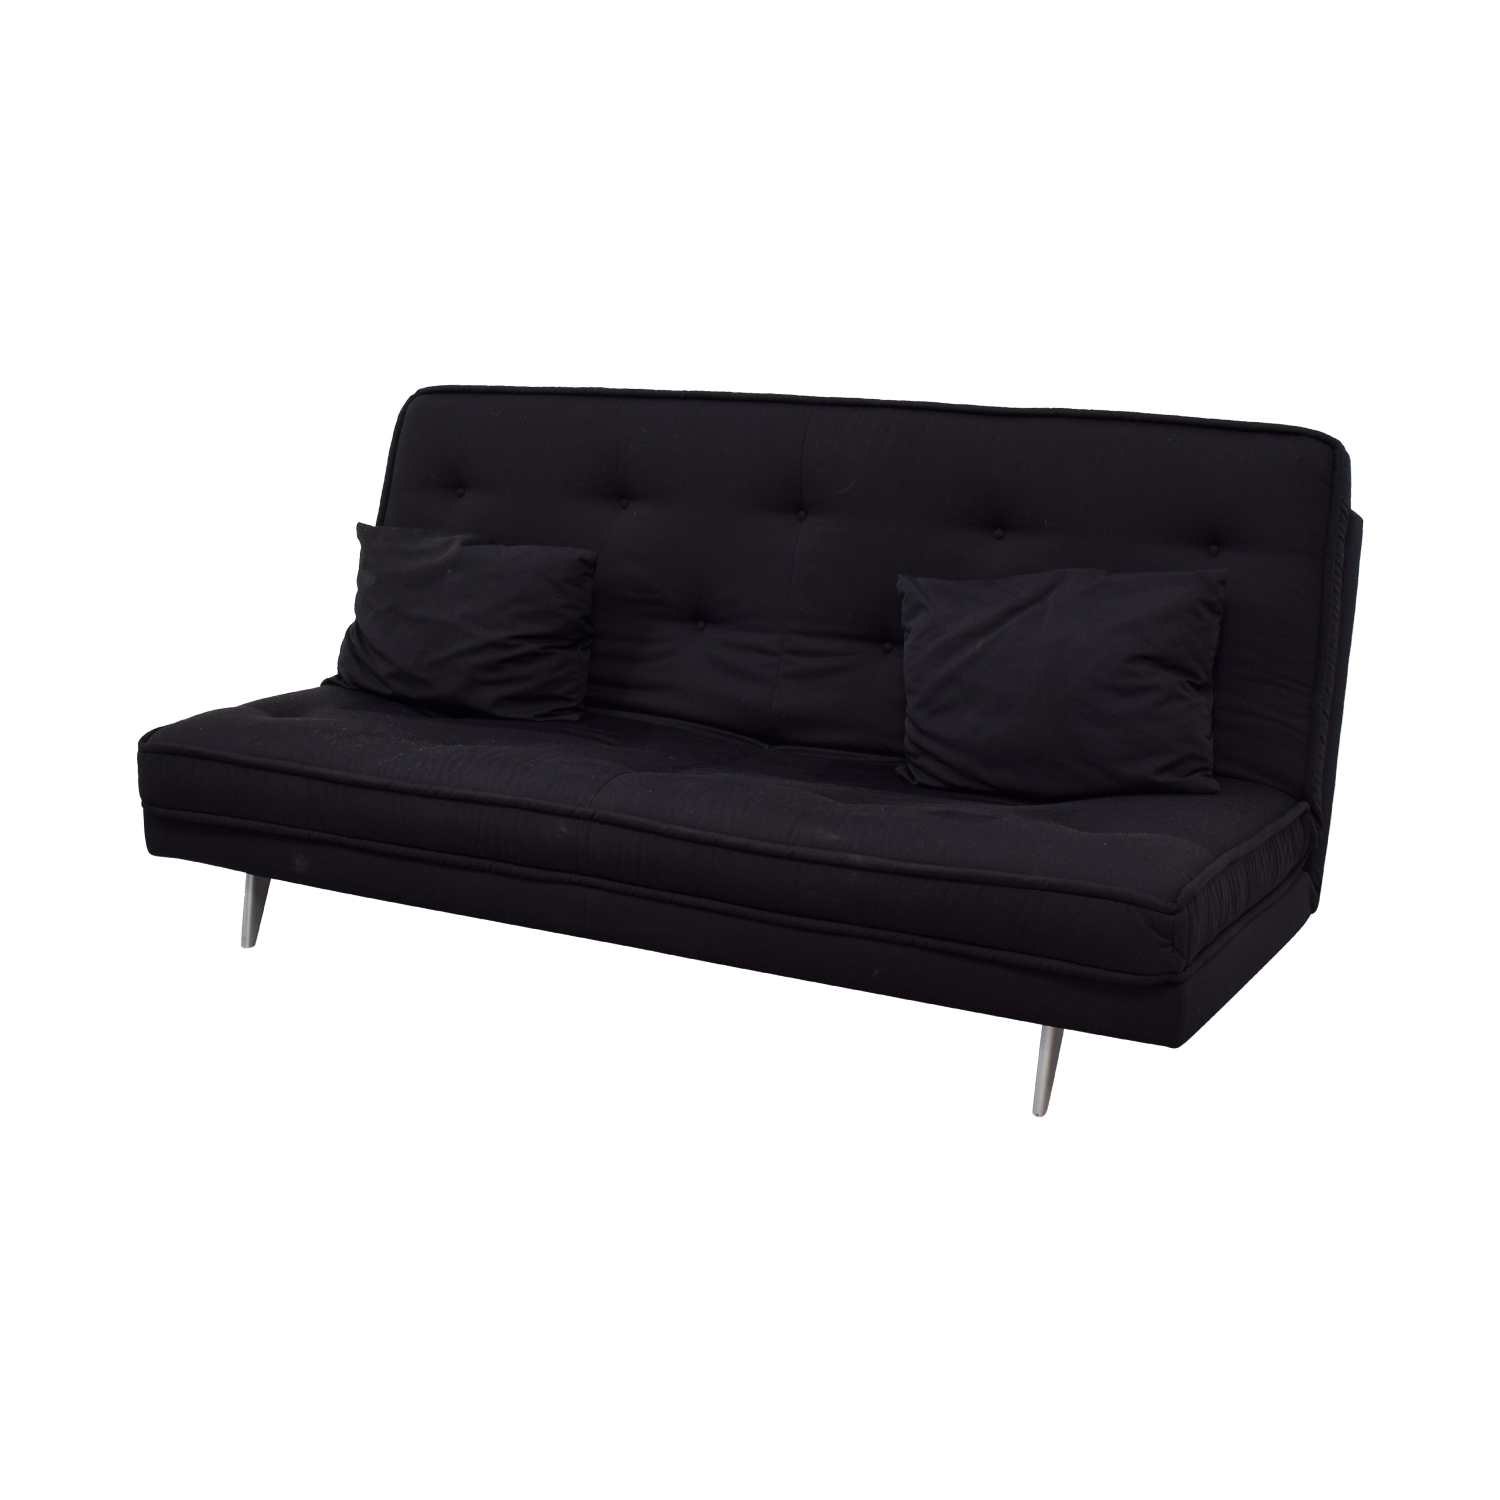 82 off ligne roset ligne roset nomade express black convertible sofa sofas. Black Bedroom Furniture Sets. Home Design Ideas